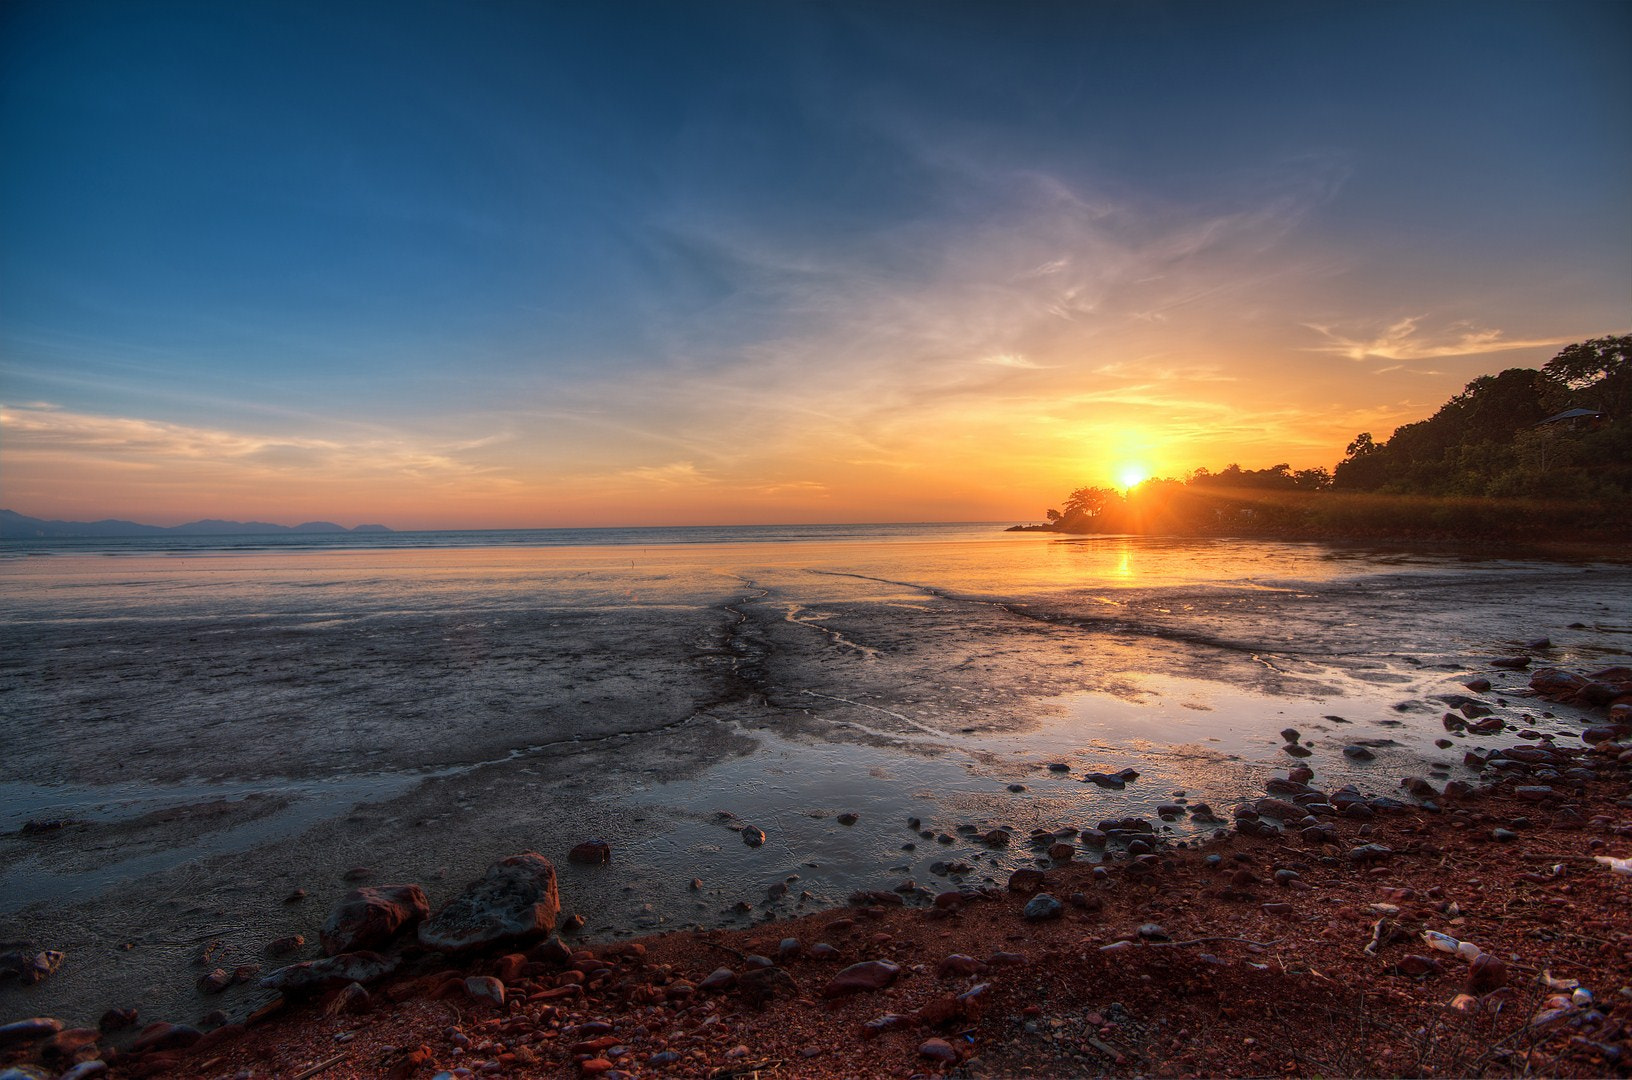 Photograph Low Tide by Cheah  Nz on 500px